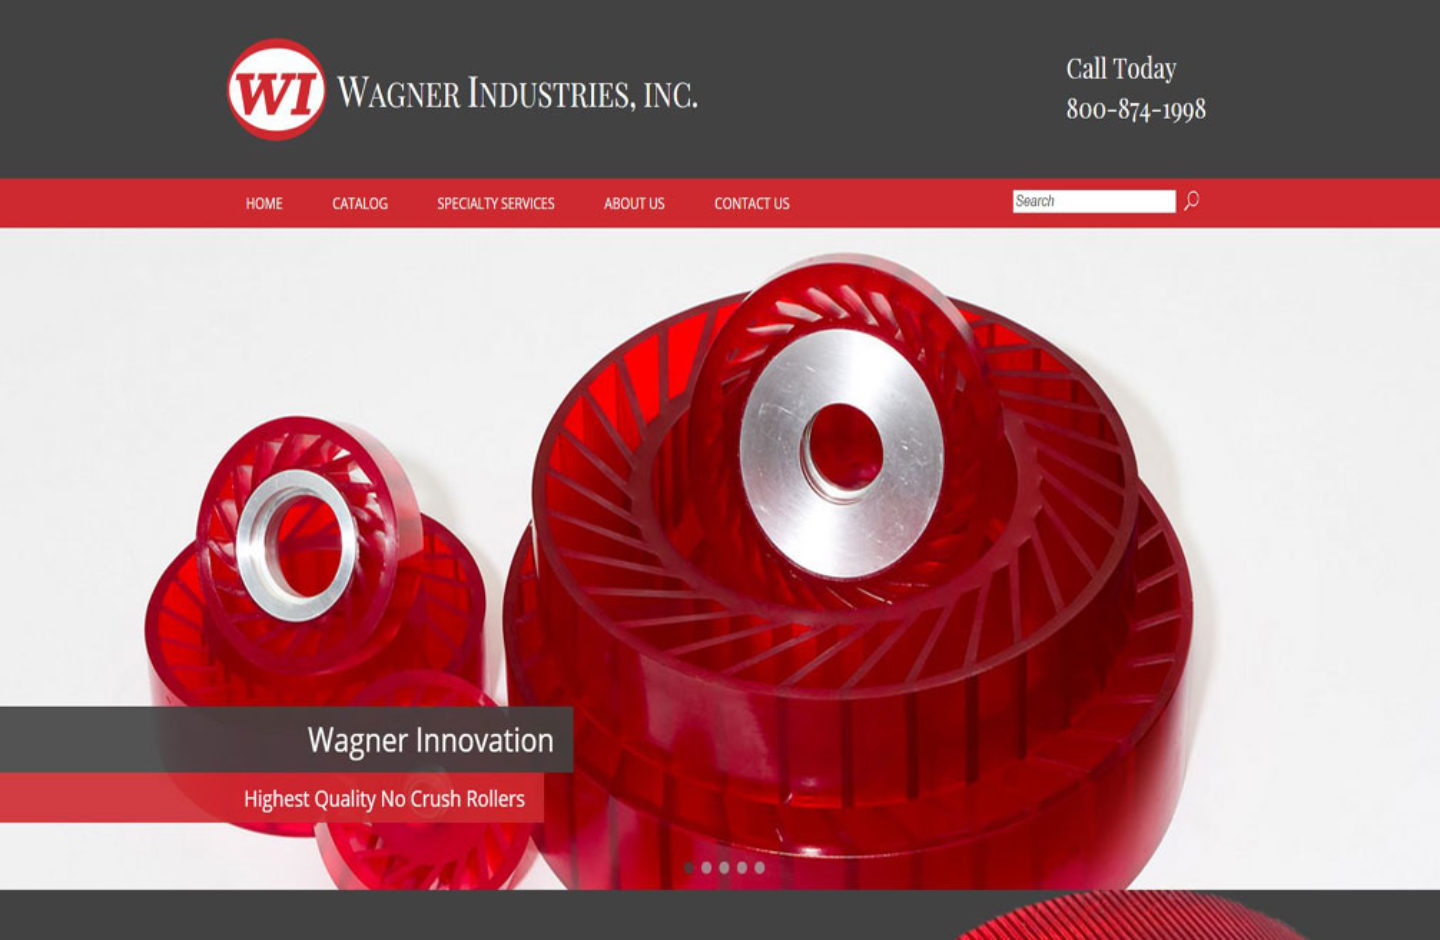 Wagner Industries